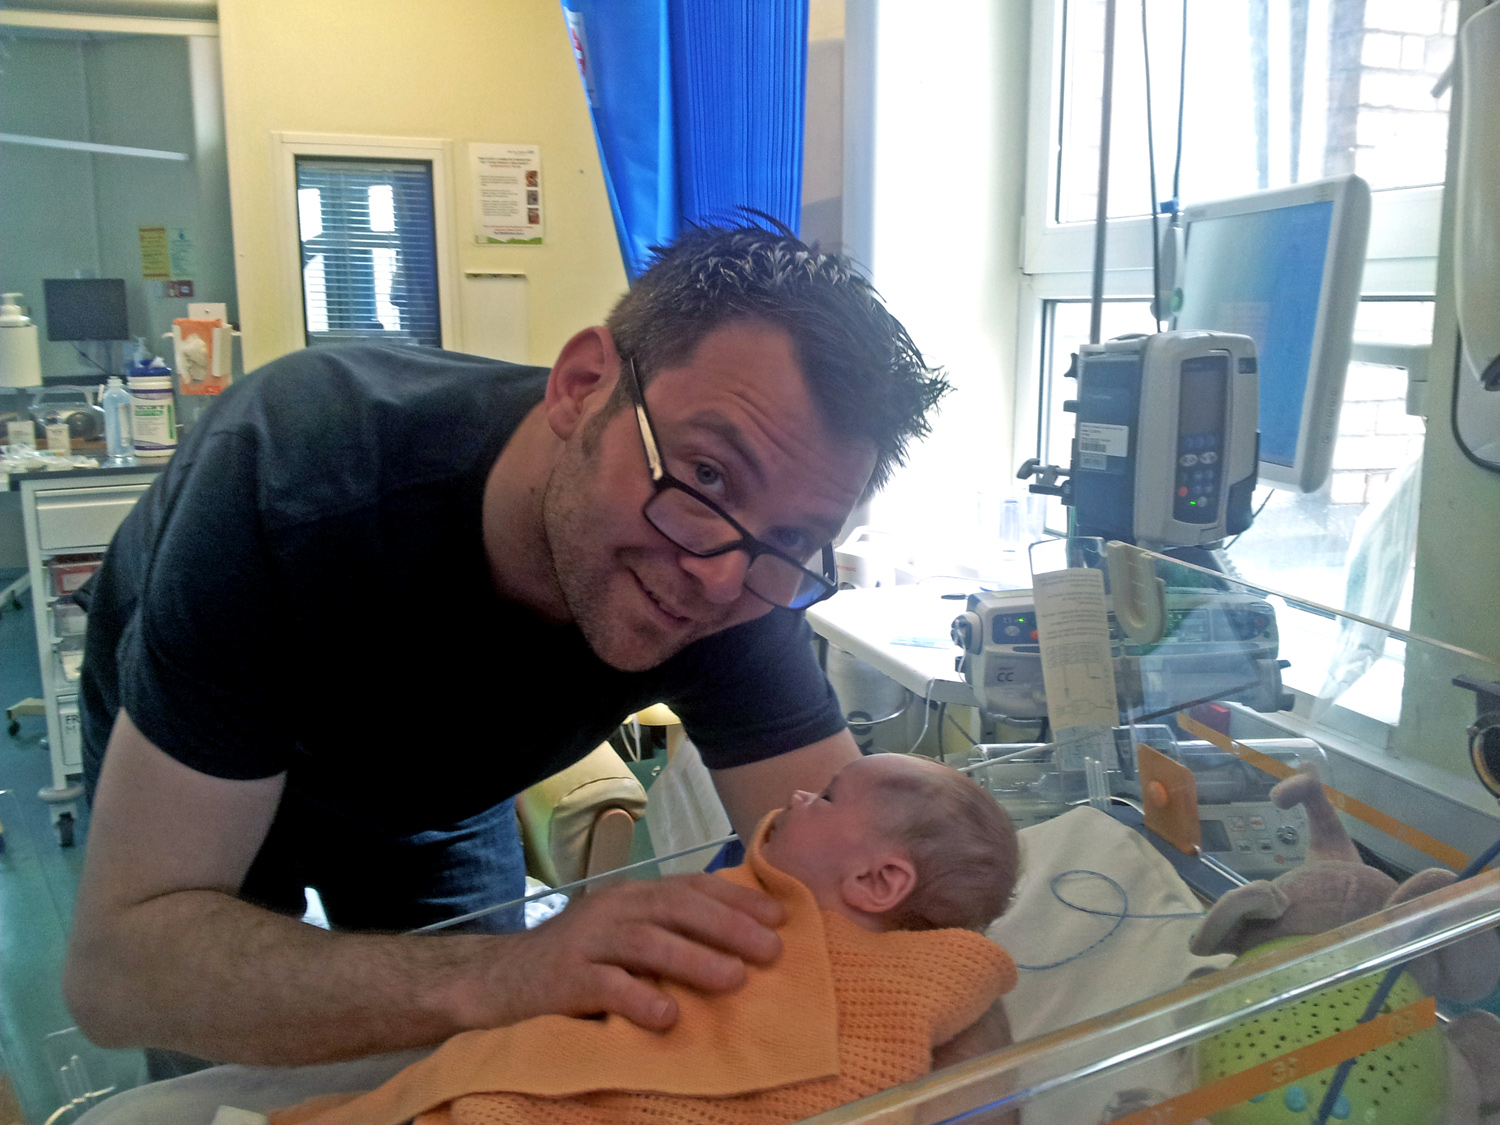 Ben Ryan and Sol in the hospital